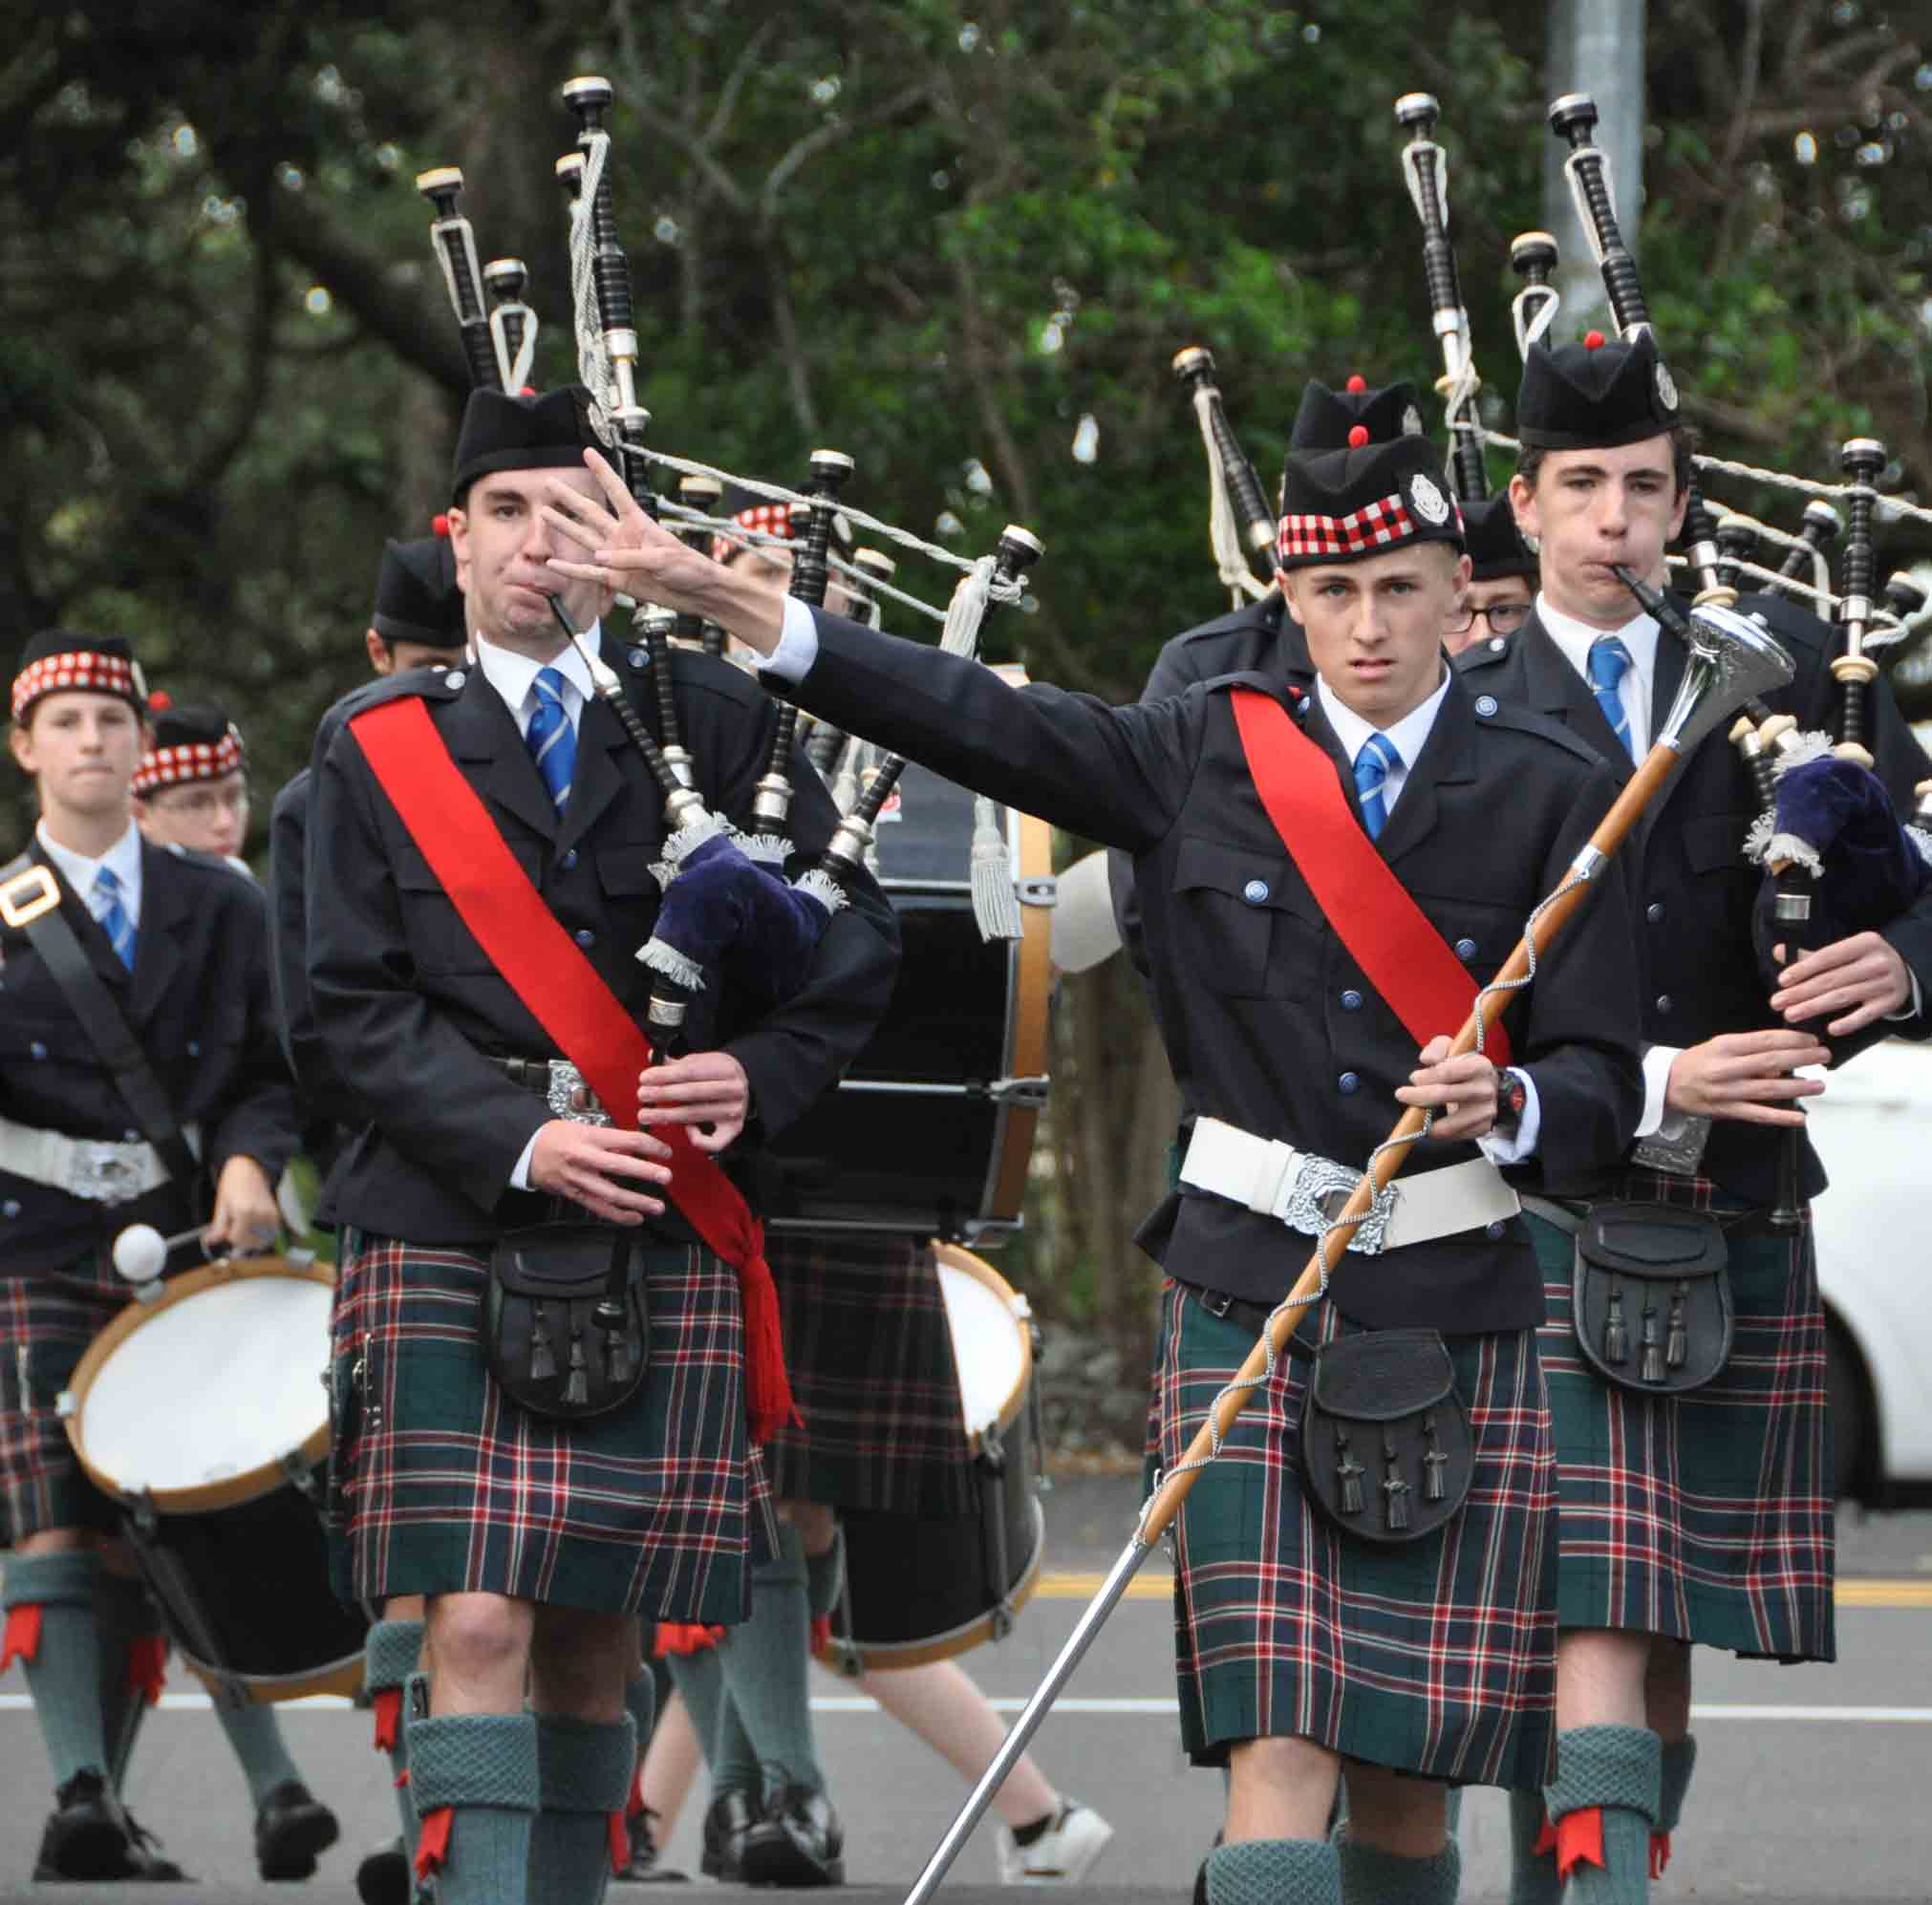 Saint-Kentigern-Senior-College-Pipes-and-Drums.jpg